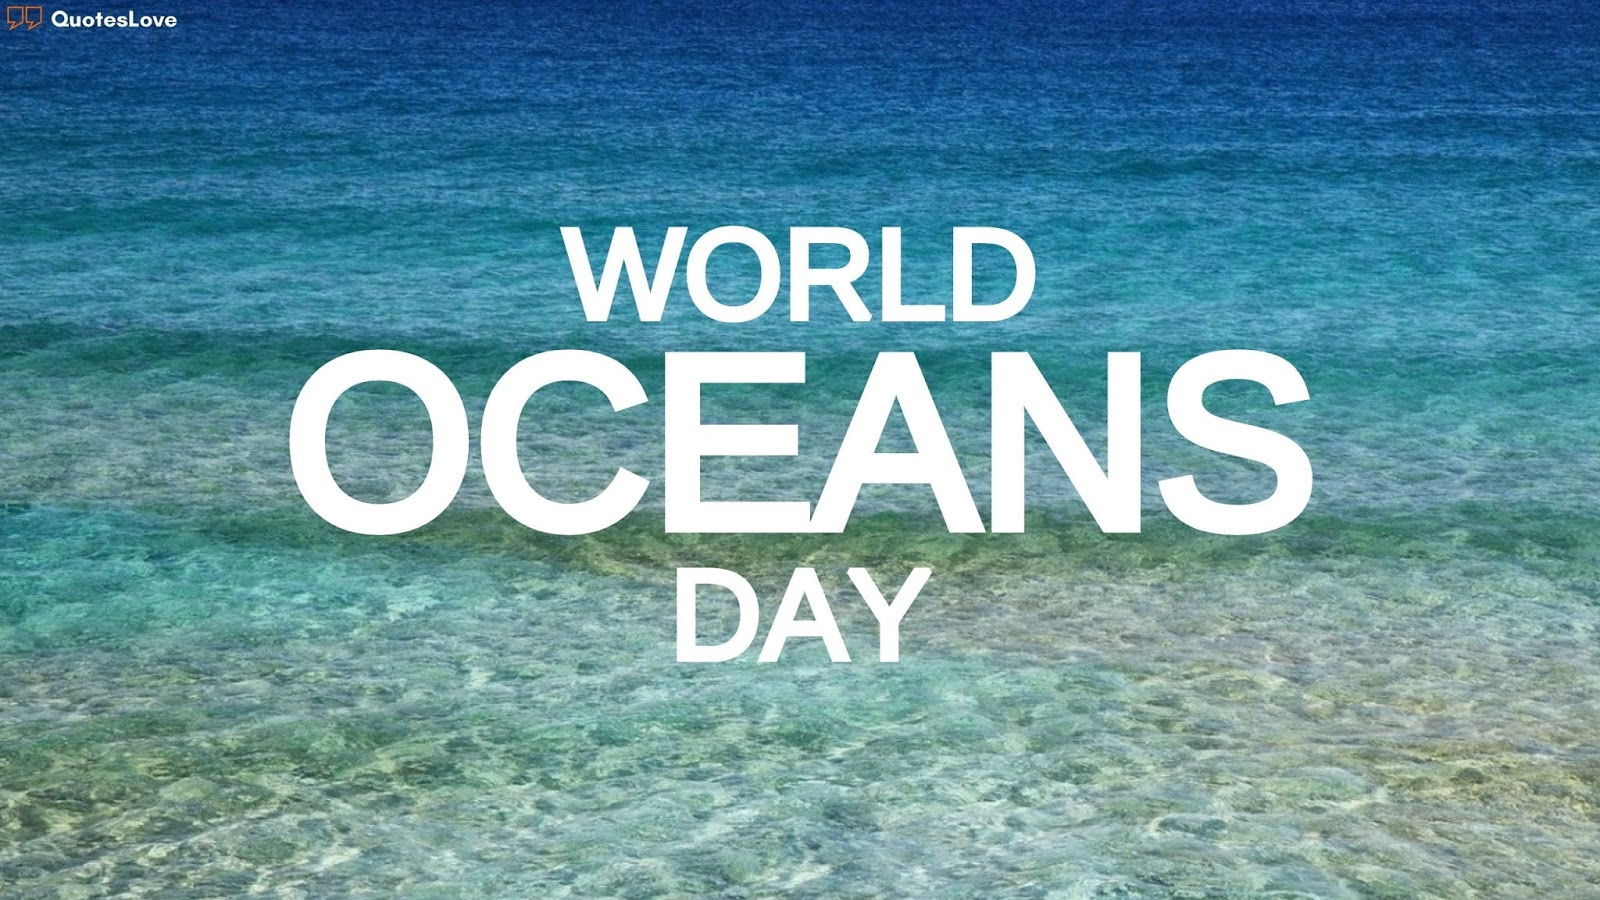 World Oceans Day Quotes, Wishes, Messages, Greetings, Images, Photo, Pictures, Poster, Wallpaper